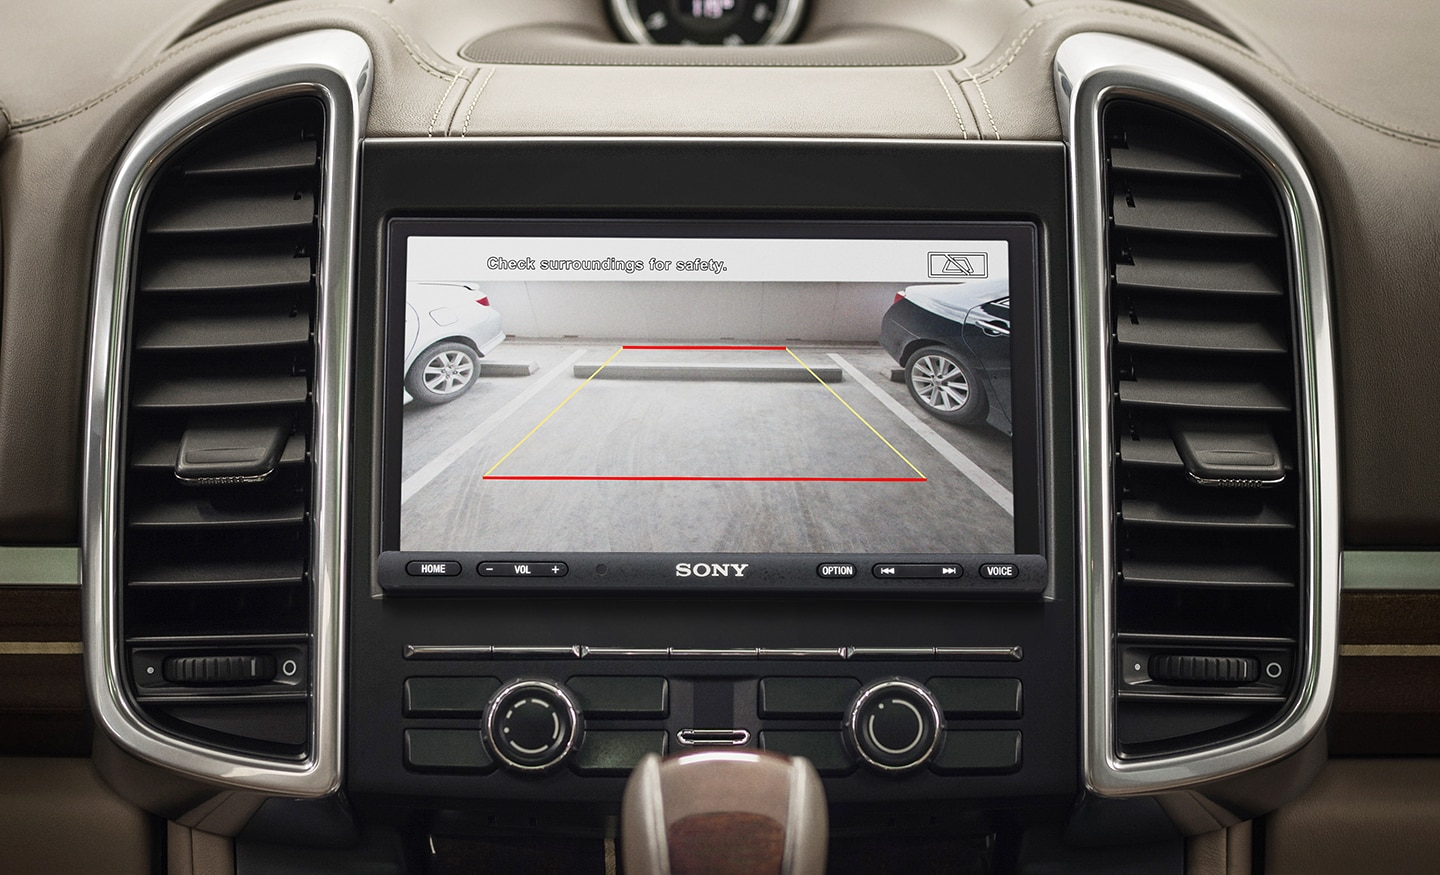 Image showing rear view camera feed with parking guidelines